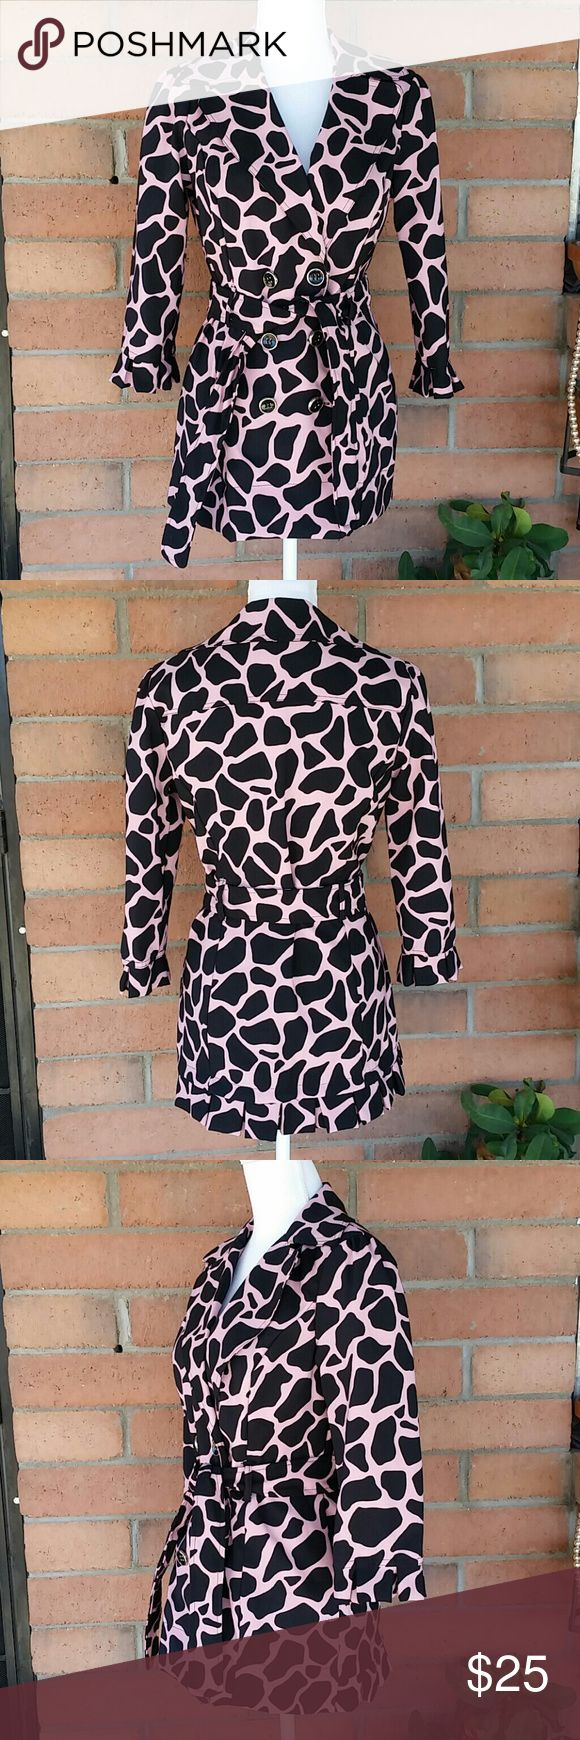 """Heart Soul Animal Print Jacket Pink/Black Sz. M Heart Soul Giraffe animal print belted jacket in Pink/Black. Jacket has cute ruffle details around the sleeve cuffs and at the bottom of jacket in the back. Jacket is lined in a black satin material.    Measurements:             Chest:    19""""                                        Length:    28"""" Heart Soul Jackets & Coats"""